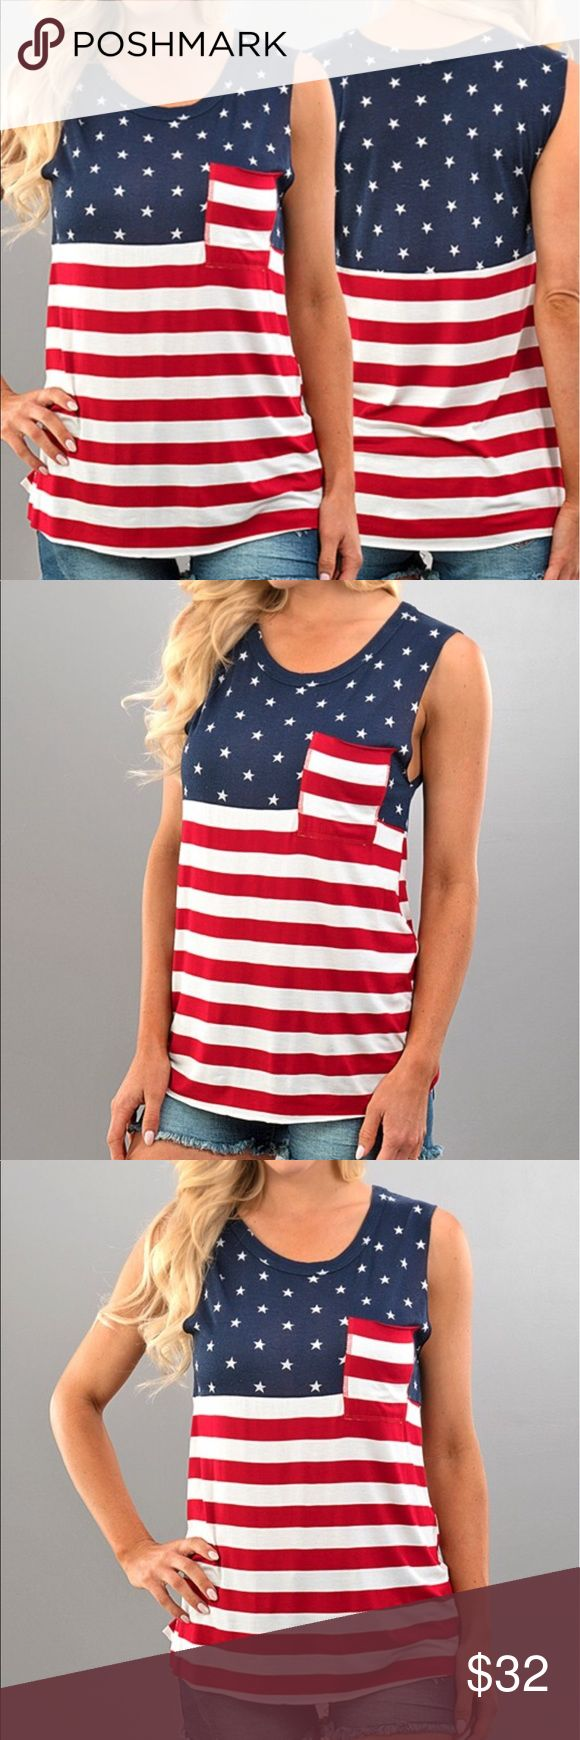 Host Pick!! << Americana Tank Top American Flag >> The best one yet!!! Stars stripes and comfy! This loose fitting tank is sure to show your American pride!! Made of 96% Polyester 4% Spandex for a soft and comfy feel. Small measures approximately 18 inches from armpit to armpit, medium 19.5 inches, and large 20.5 inches Boutique Tops Tank Tops